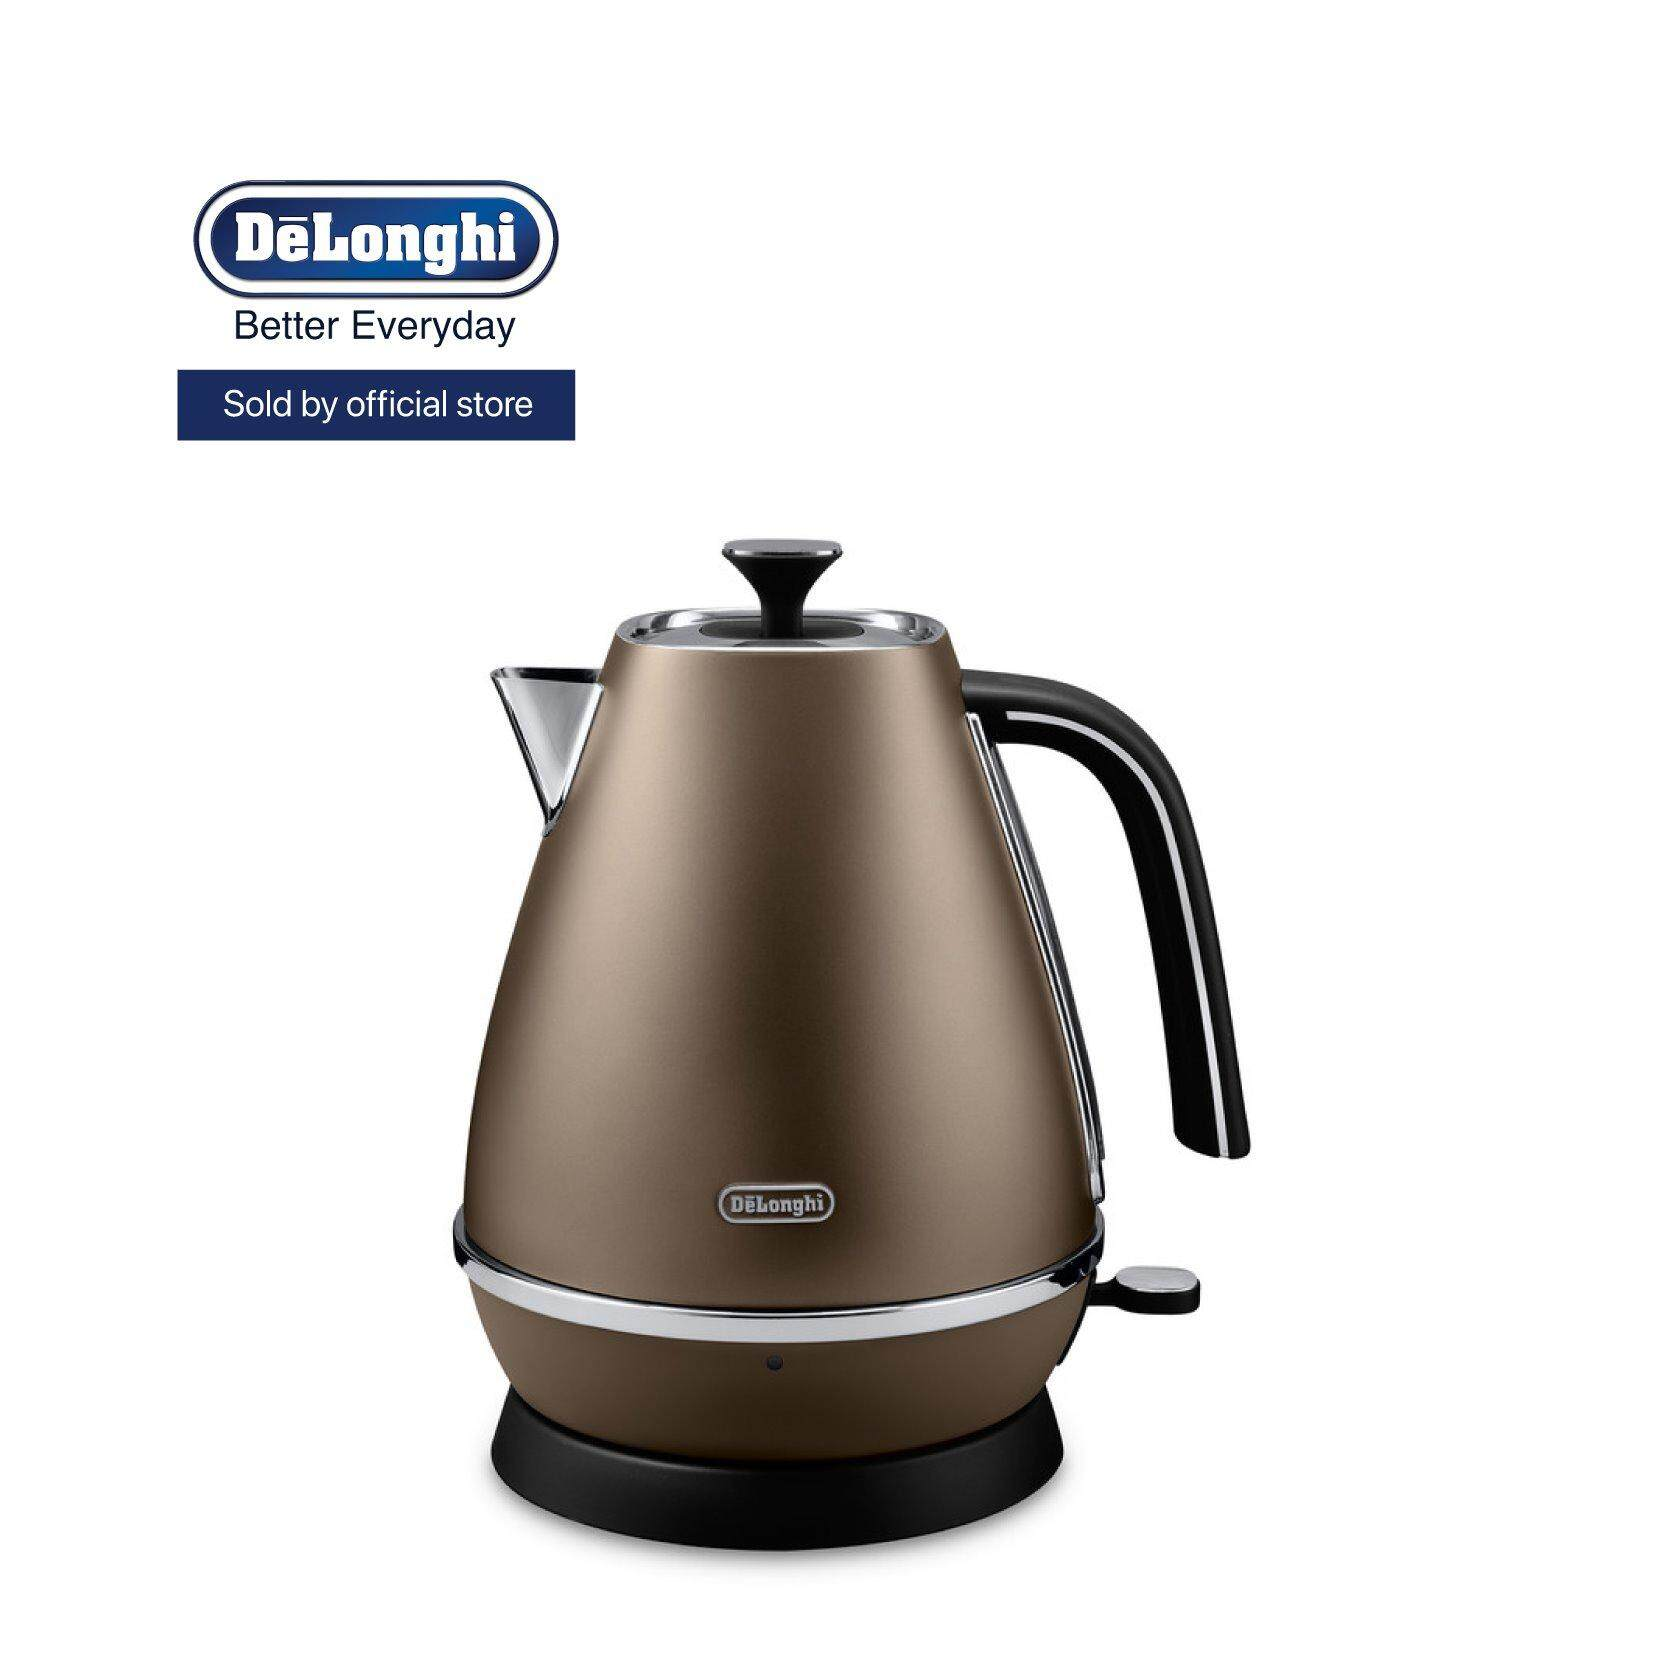 Delonghi Home Appliances With Best Online Price In Malaysia